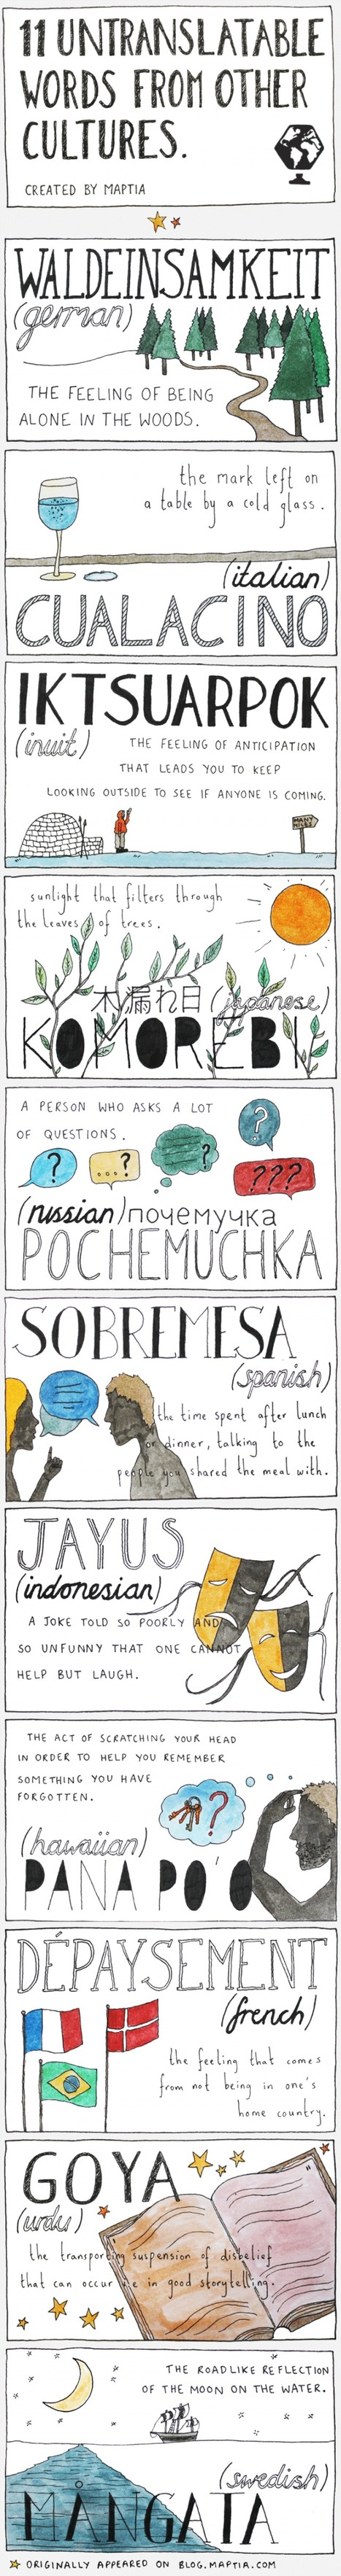 11 Untranslatable Words From Other Cultures | English Class | Scoop.it